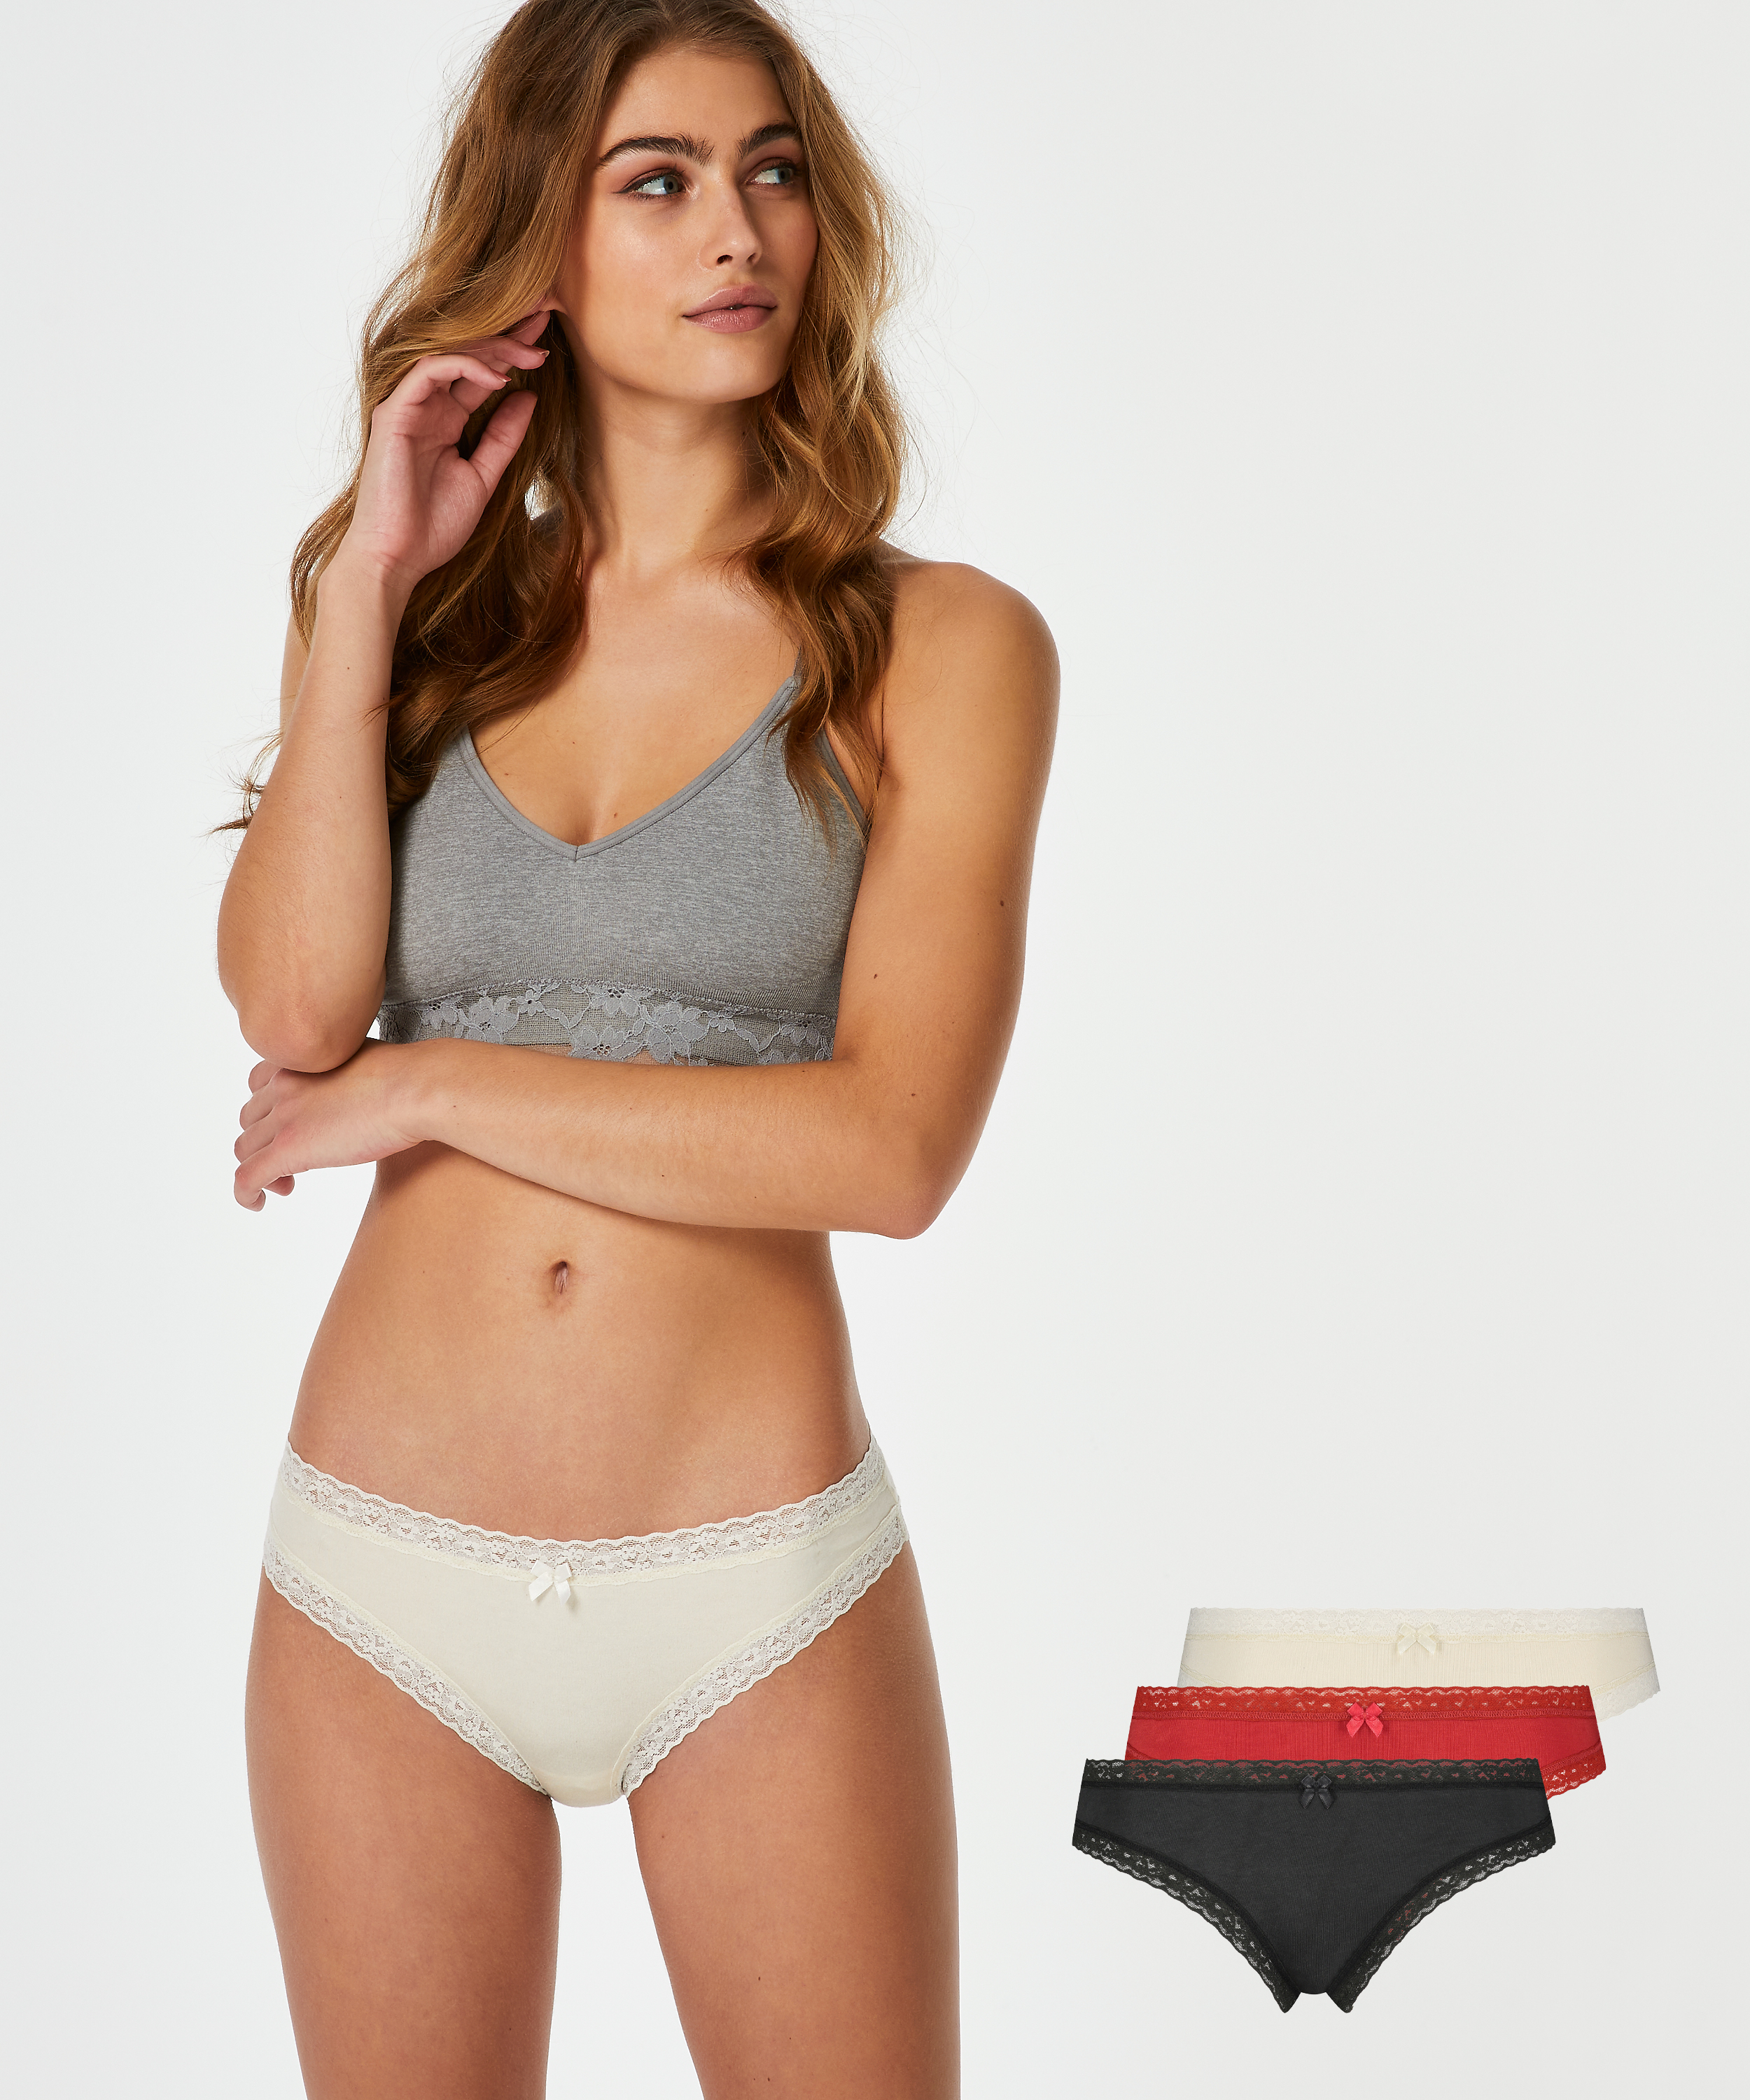 3-Pairs of knickers, Red, main